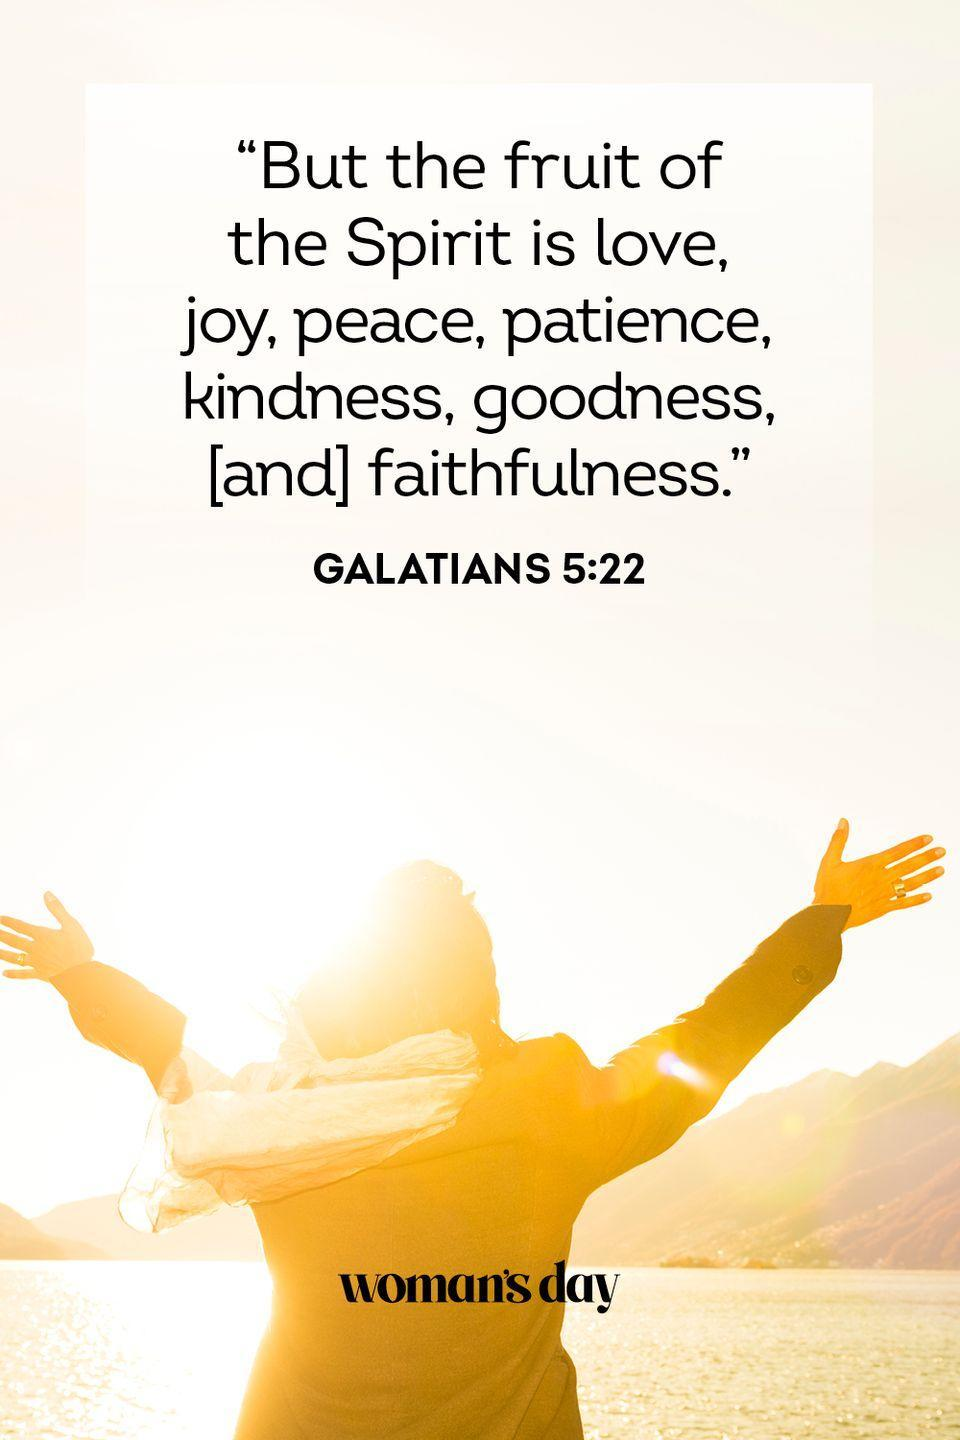 """<p>""""But the fruit of the Spirit is love, joy, peace, patience, kindness, goodness, [and] faithfulness."""" — Galatians 5:22</p><p><strong>The Good News</strong>: Be at peace, and the rest will follow.</p>"""